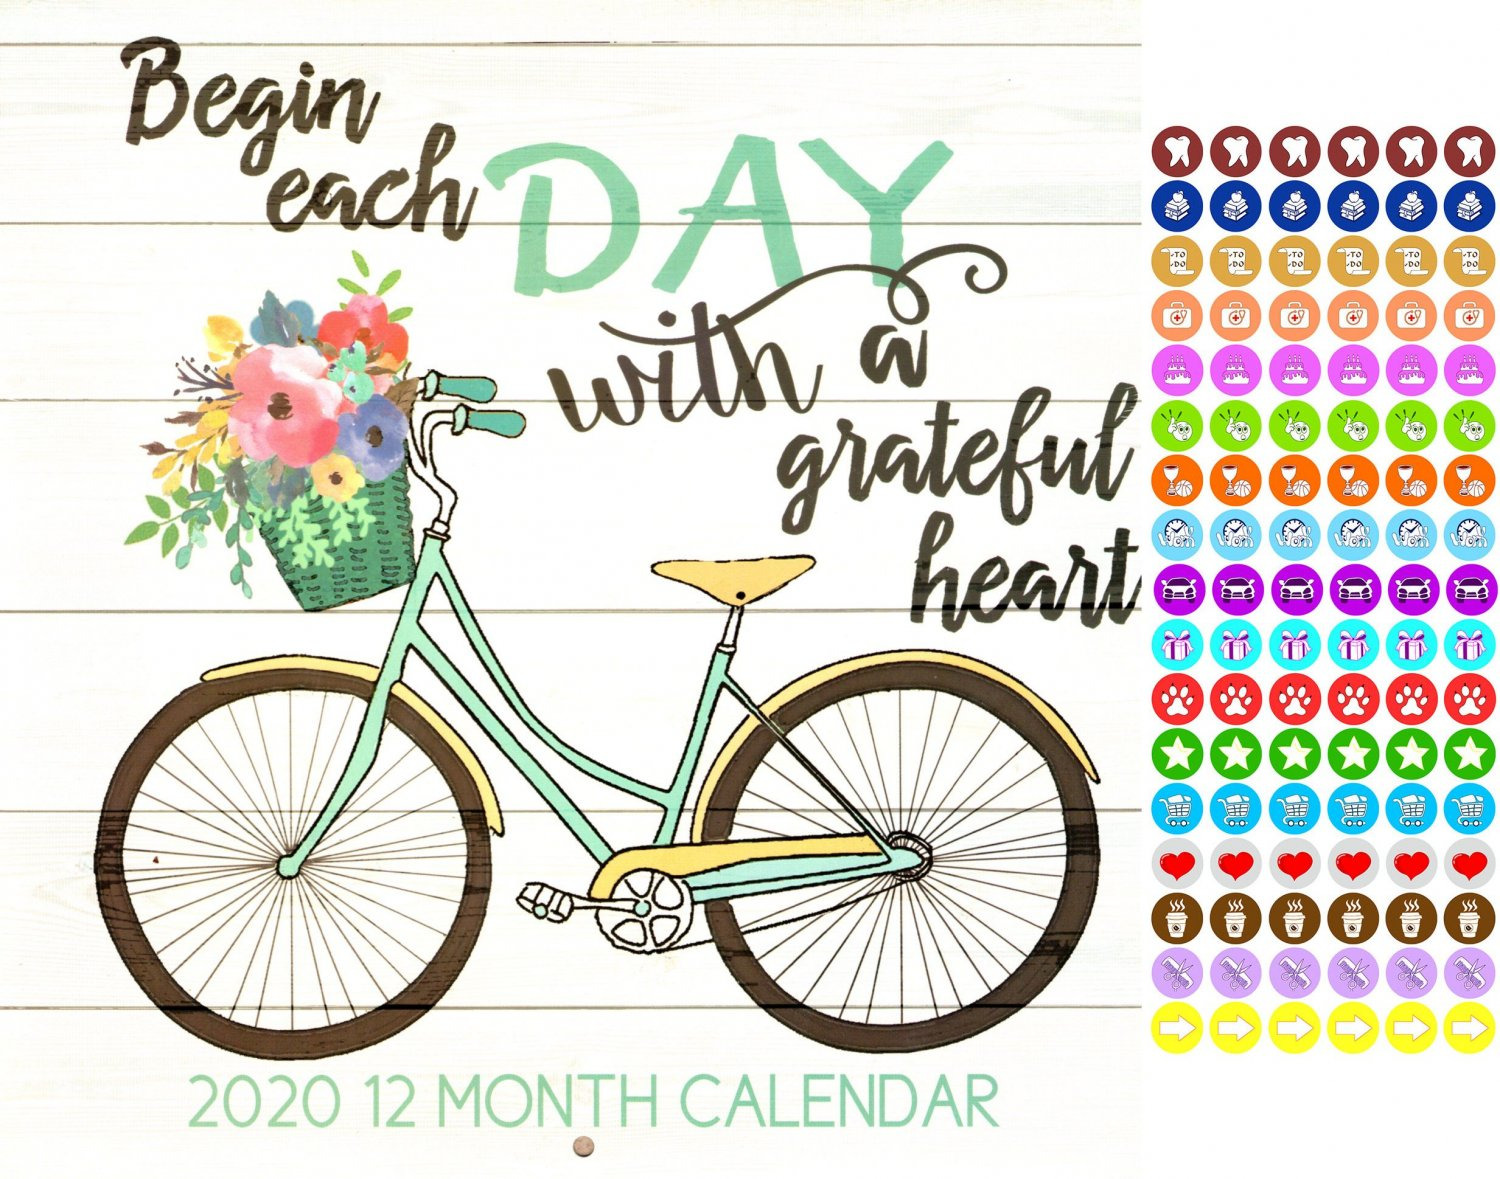 Begin Each Day with a Grateful Heart  - 12 Month 2020 Wall Calendar - with 100 Reminder Stickers